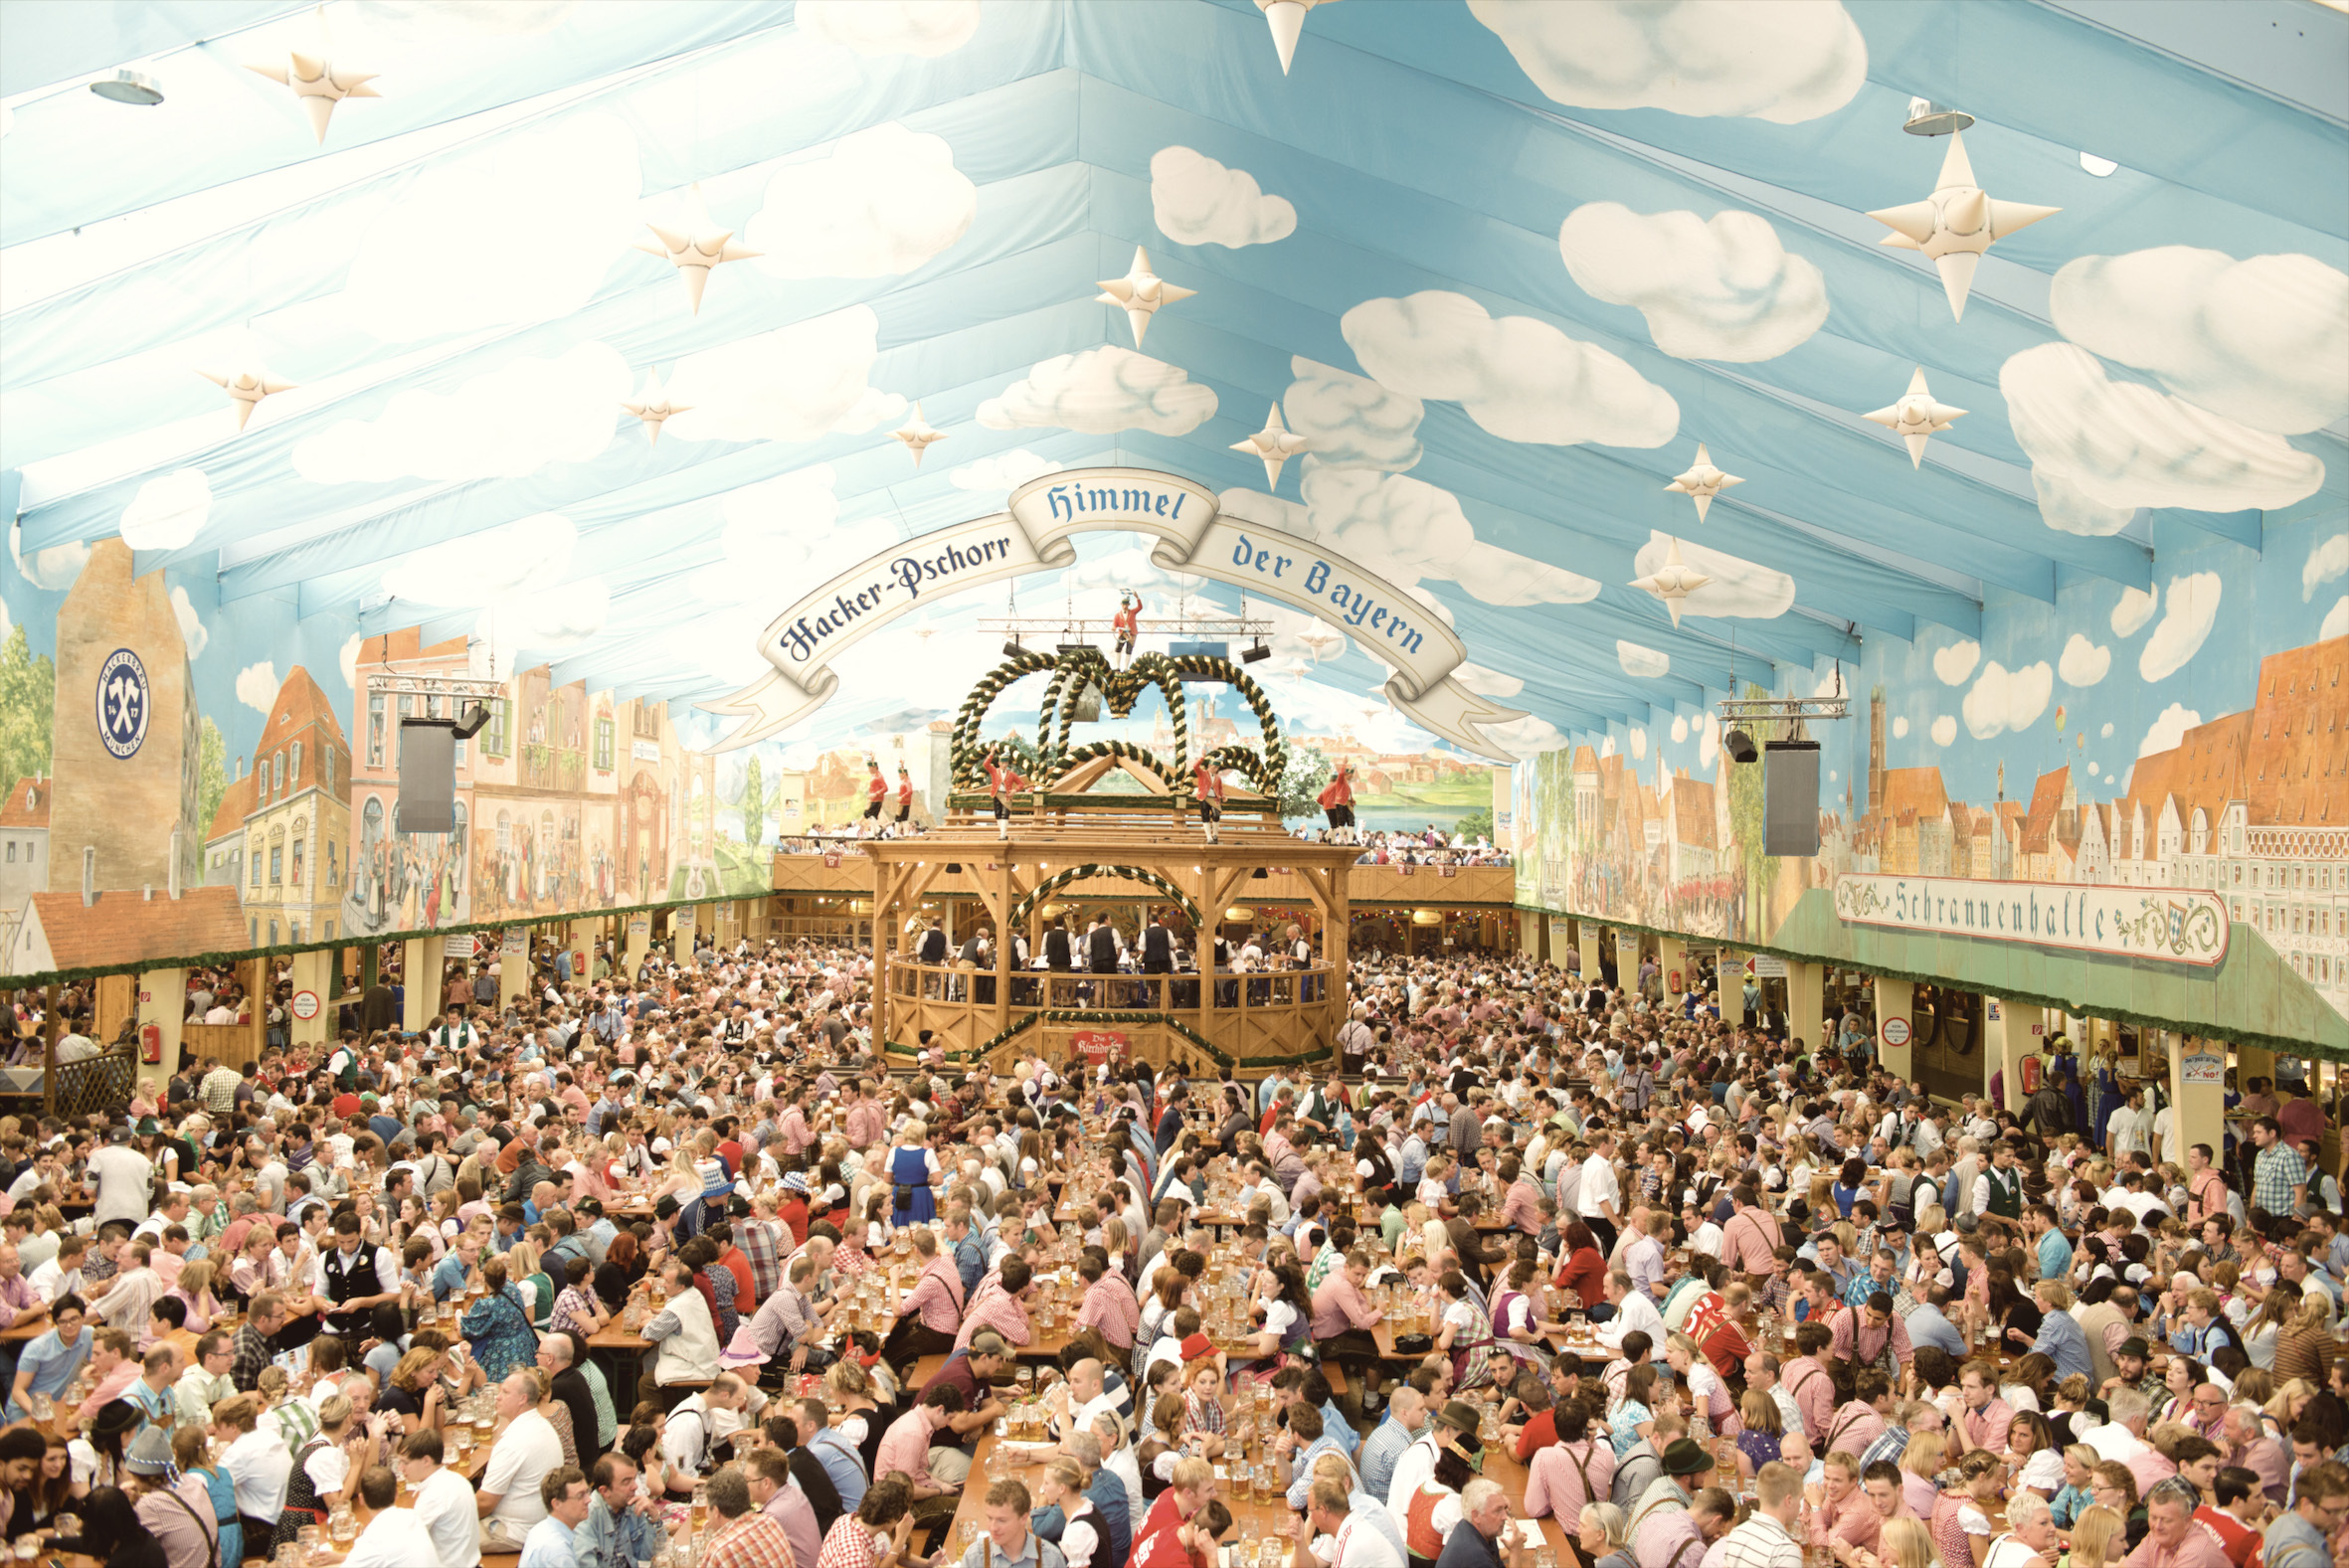 oktoberfest london mudchute